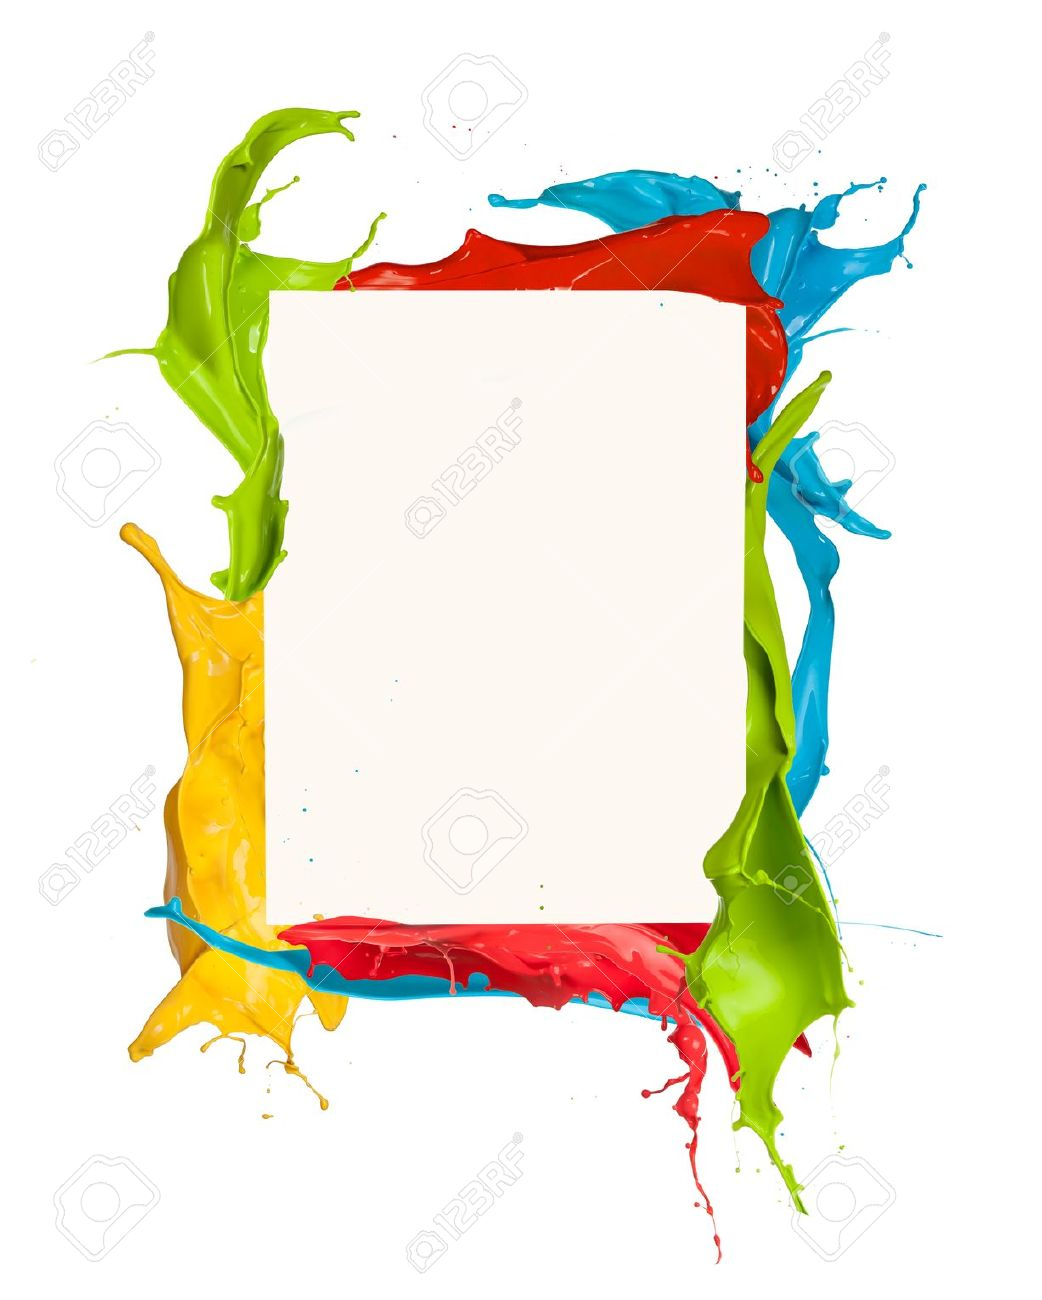 Isolated Shot Of Colored Paint Frame Splash On White Background ...